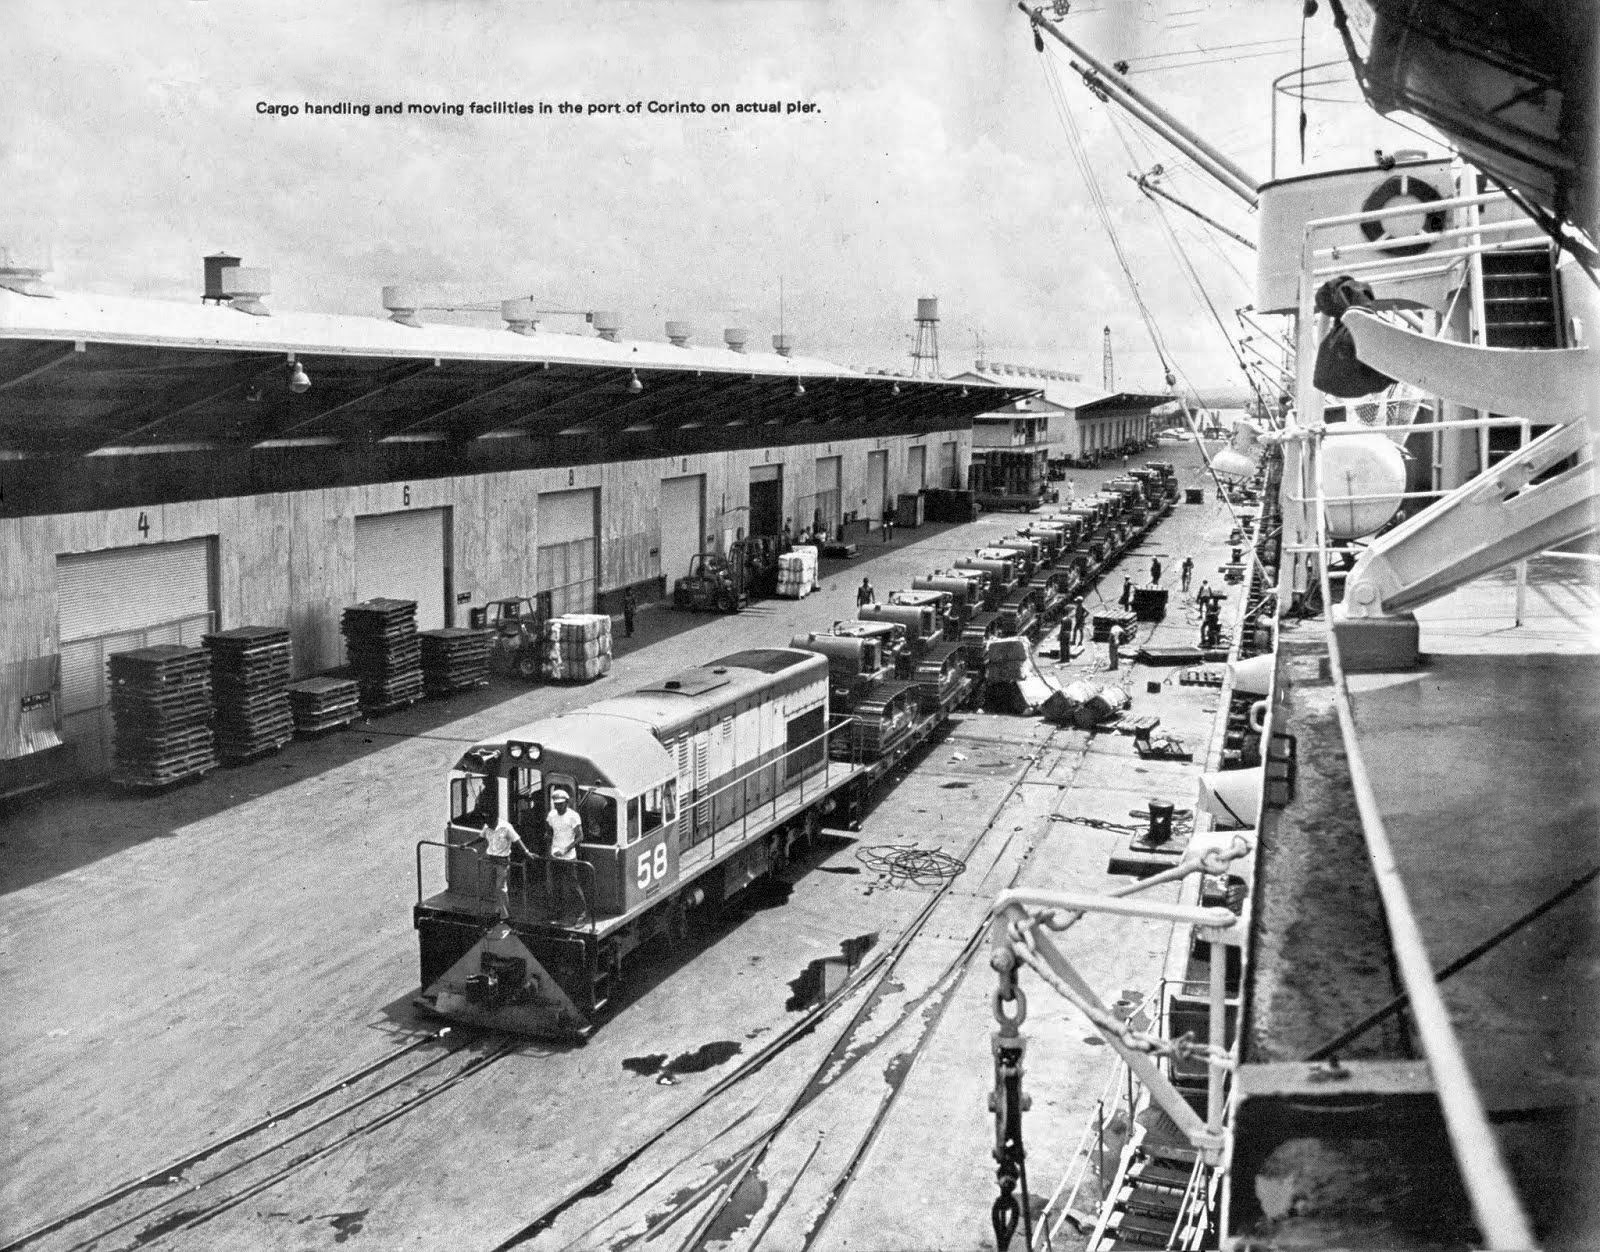 locomotive No.58 at Corinto pier with 11+ bulldozers year 1956